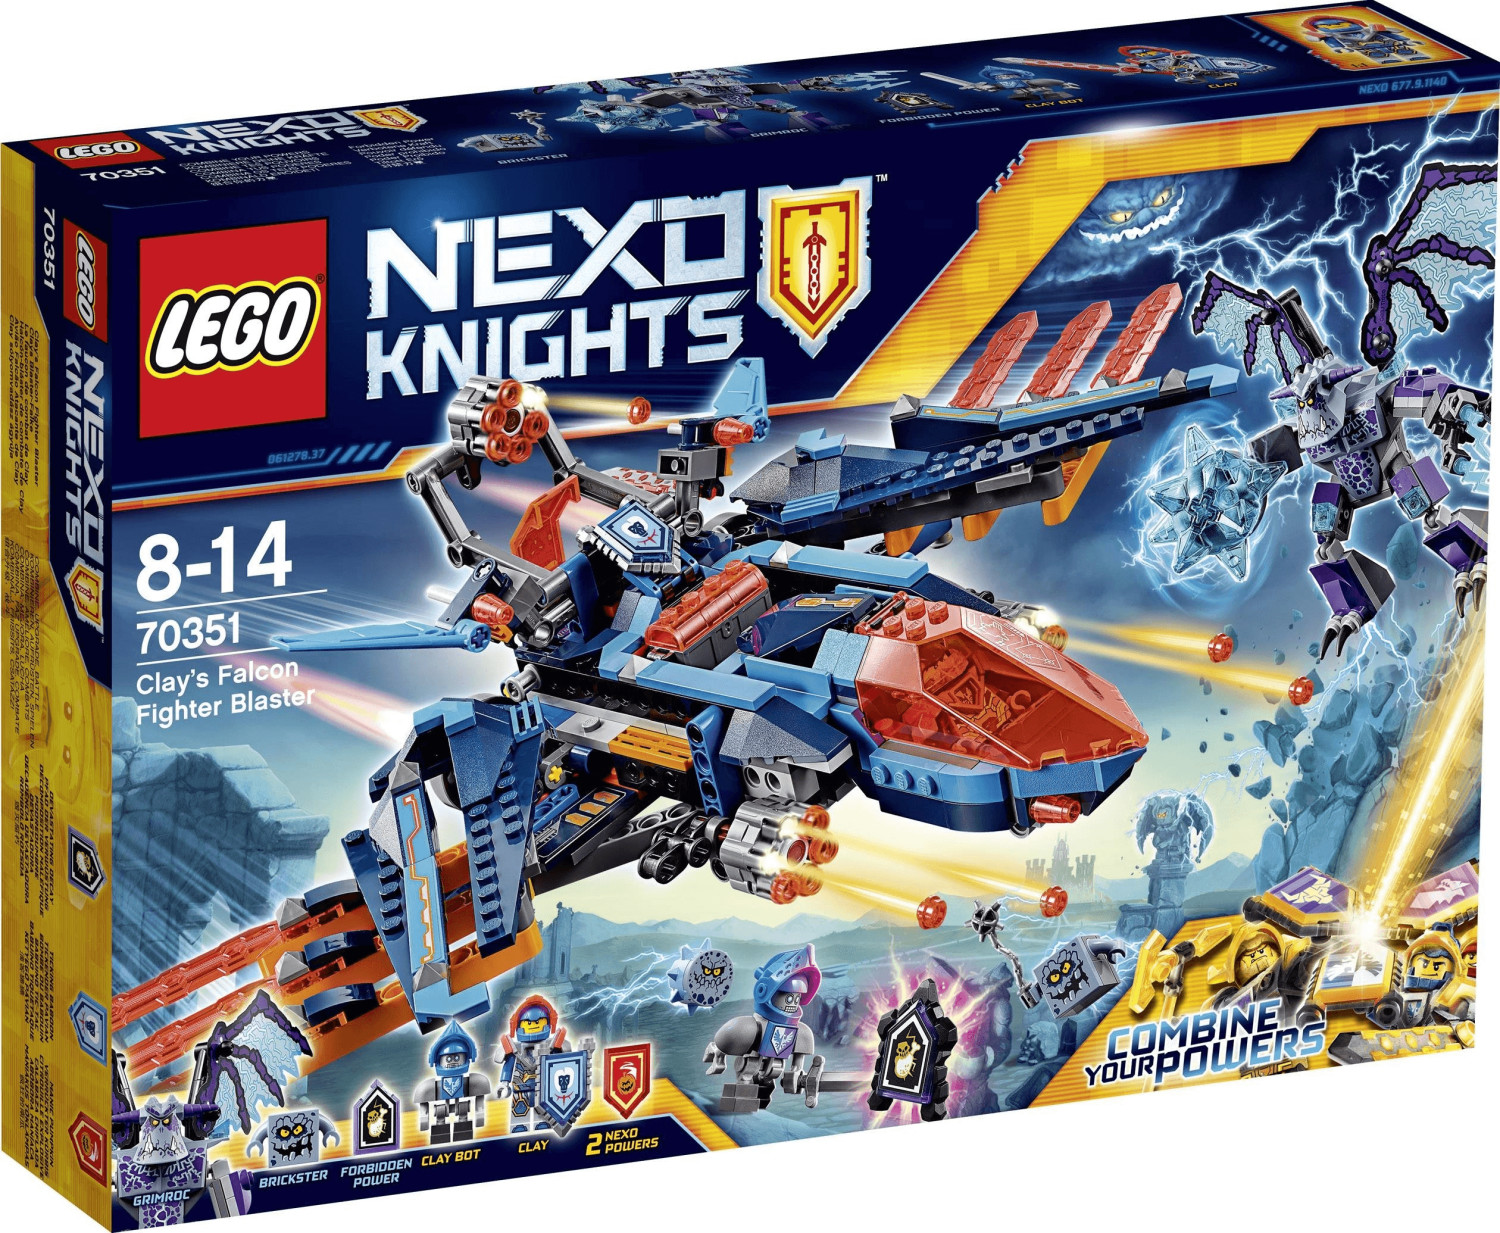 LEGO Nexo Knights - Clays Falcon Fighter Blaster (70351)